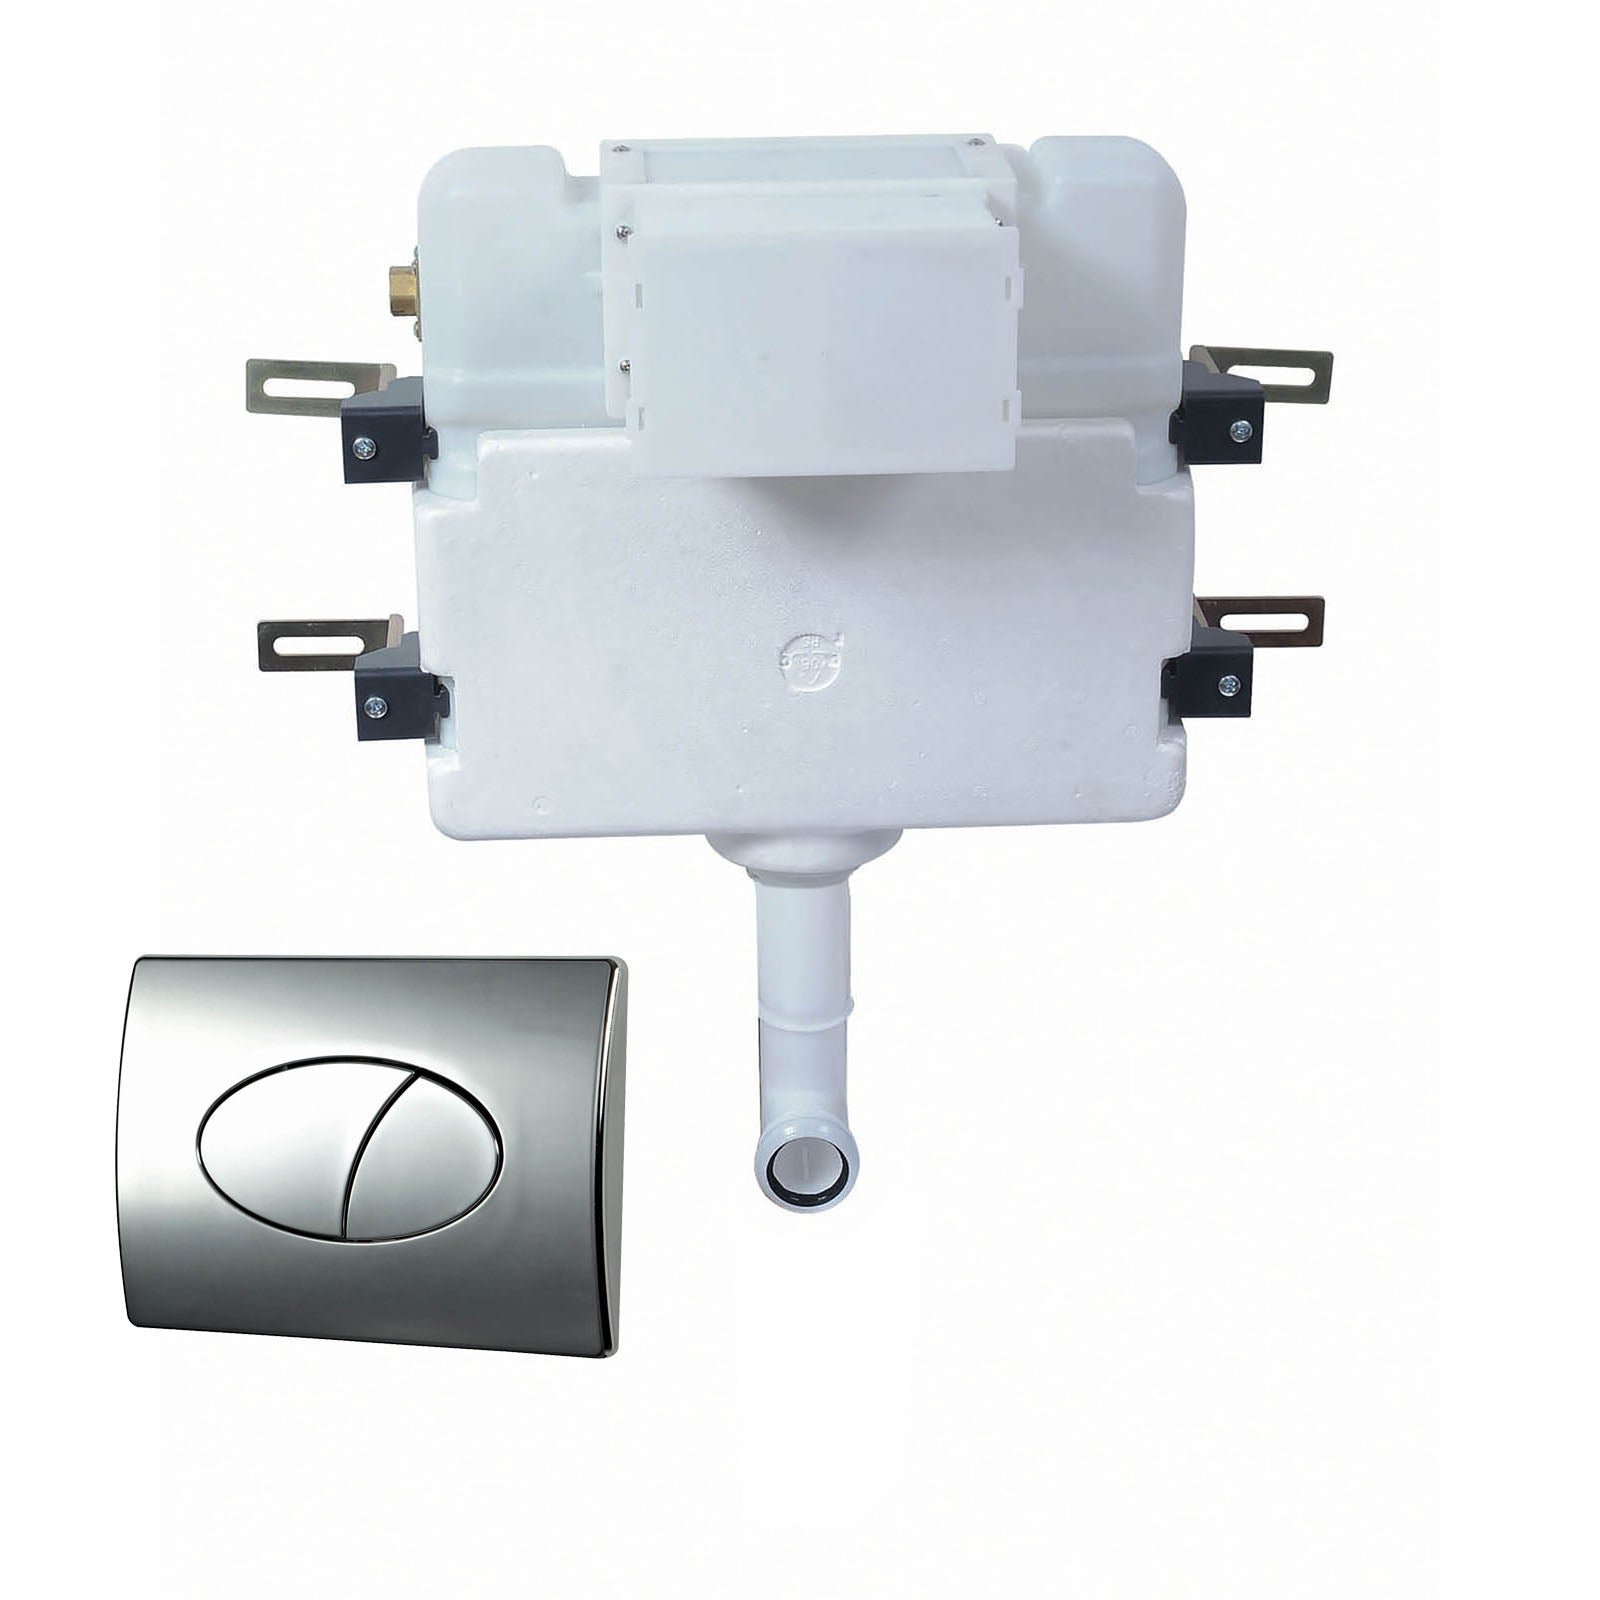 Phoenix Luxury Concealed Cistern With Pneumatic Round Flush Plate